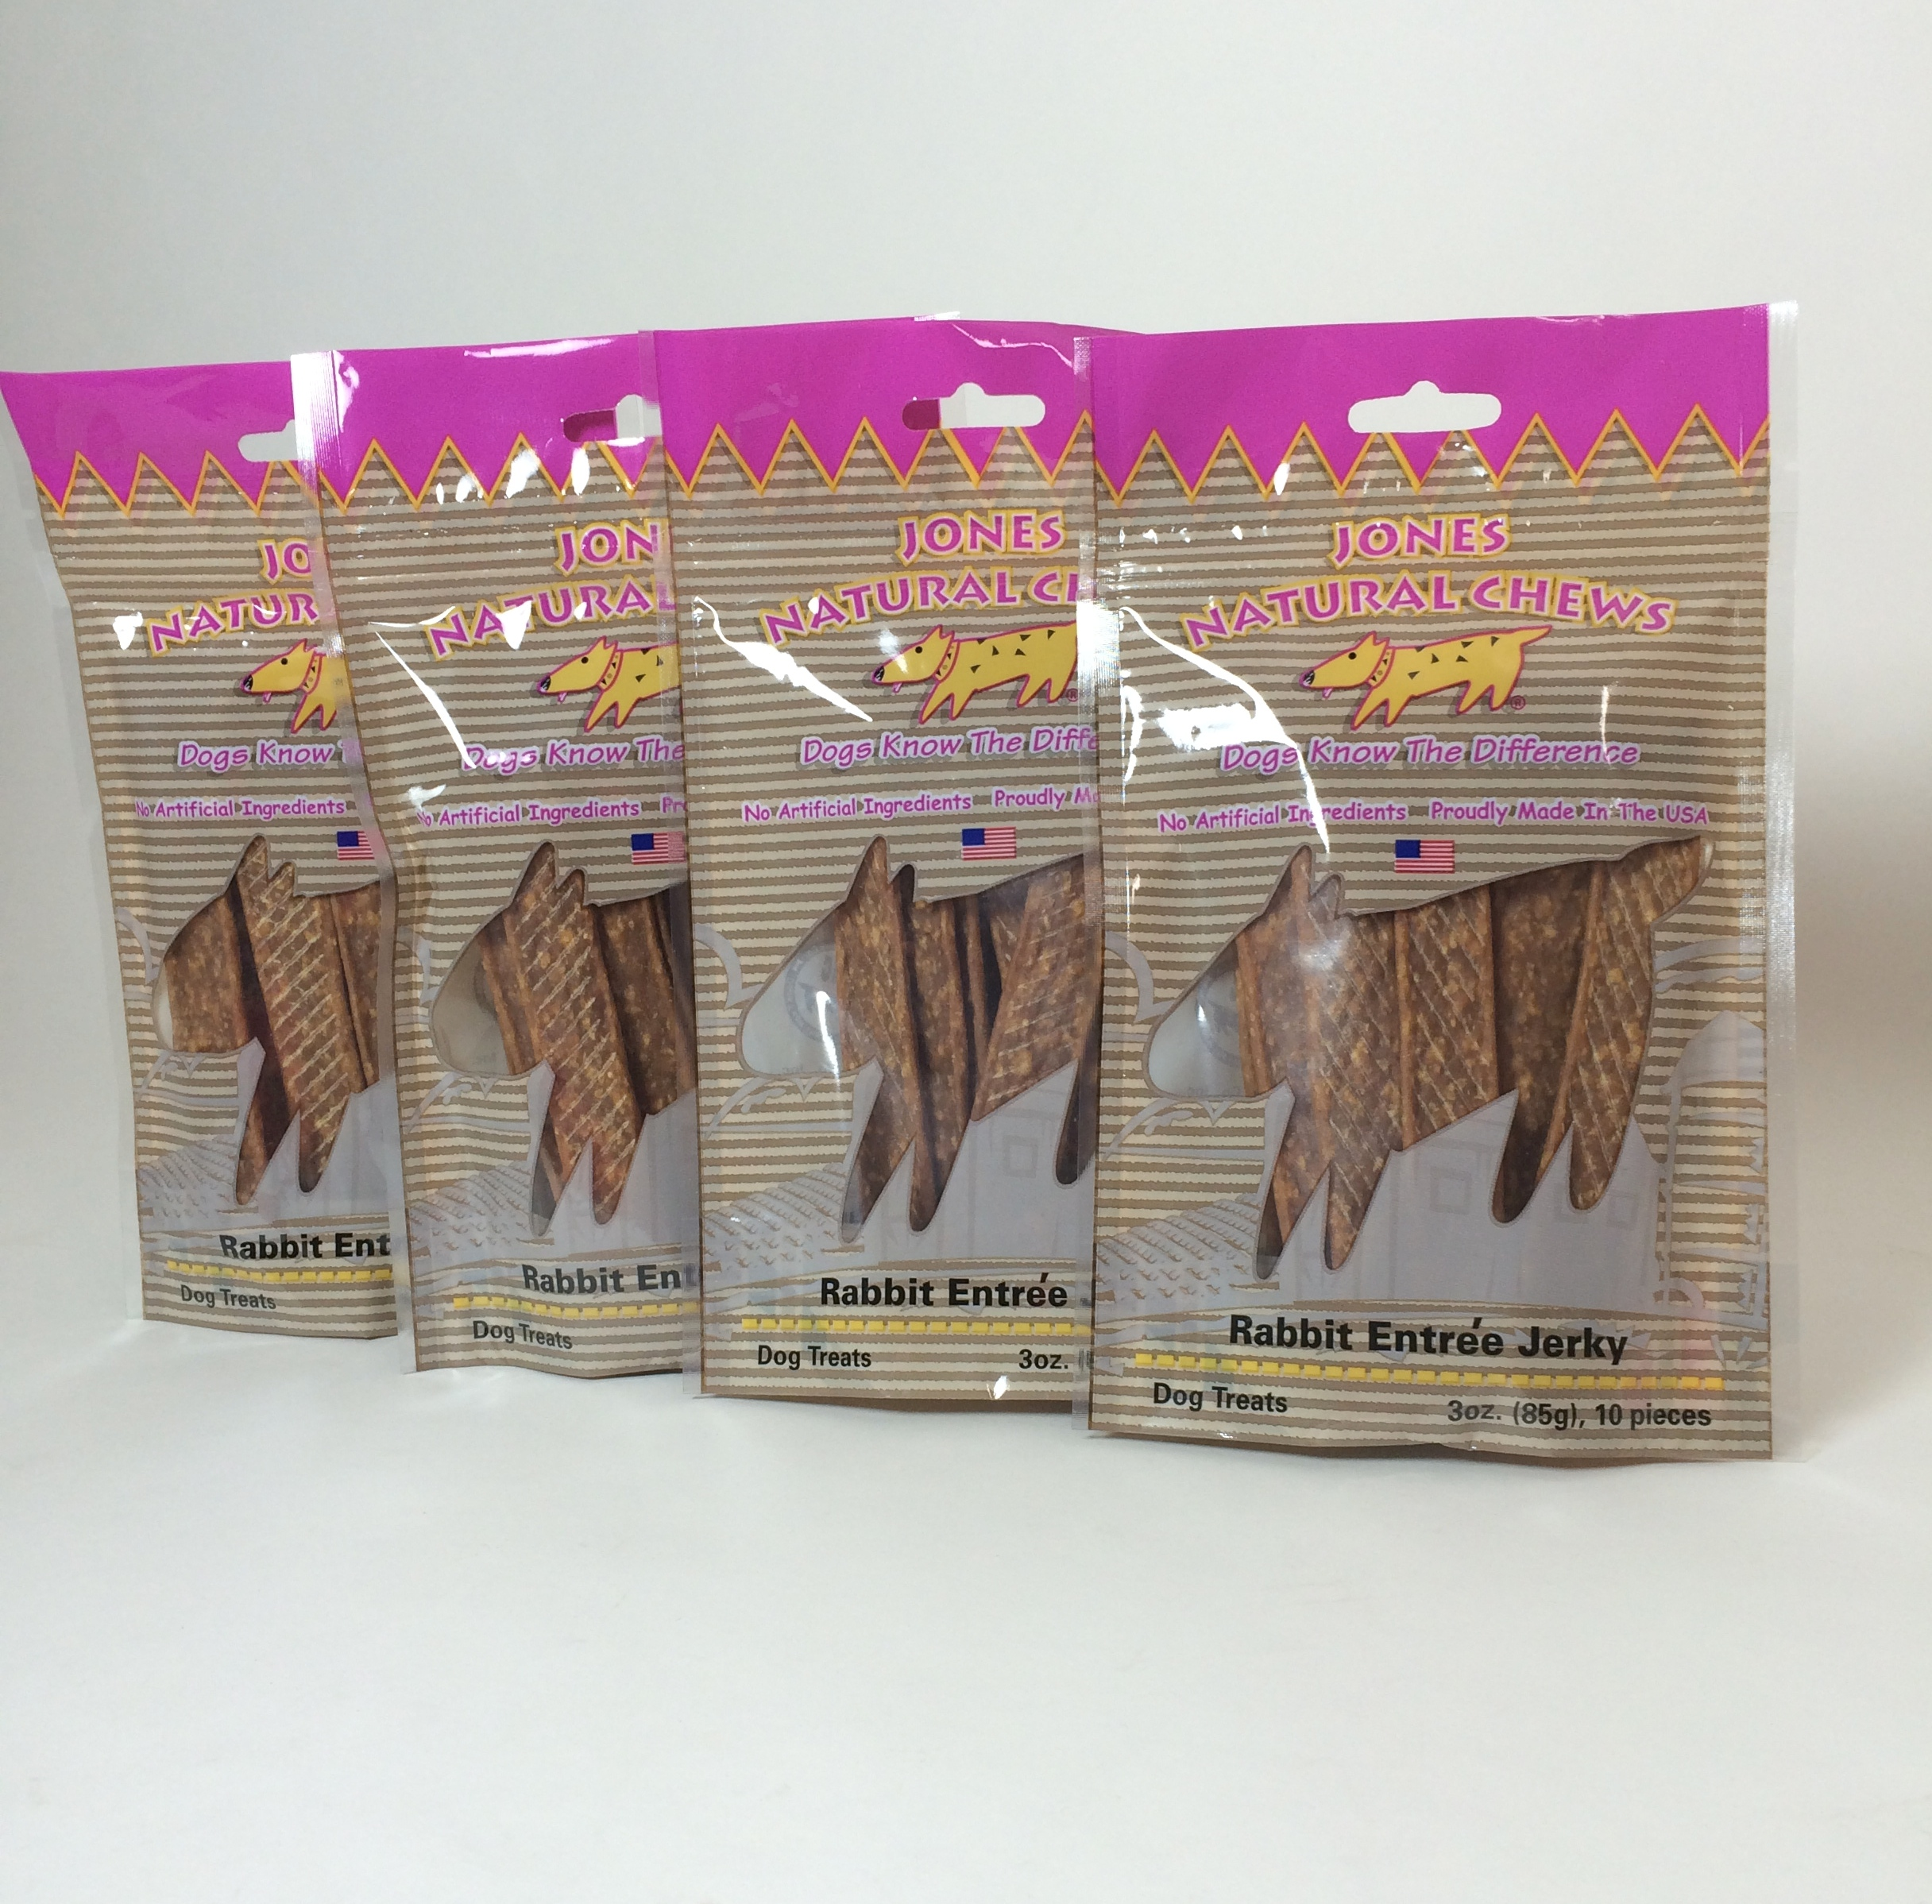 Jones All Natural Rabbit Jerky